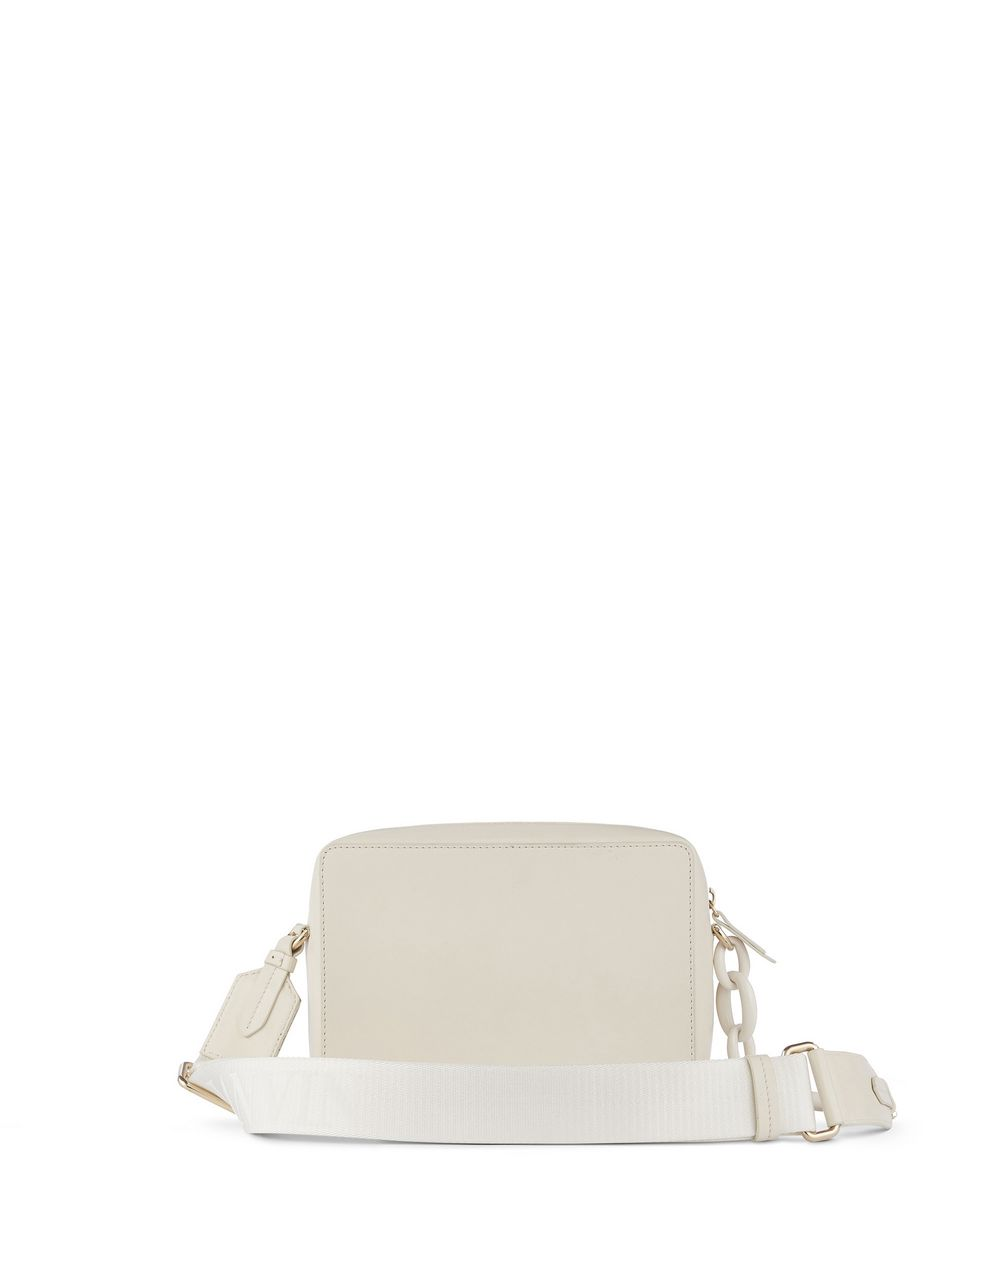 SMALL TOFFEE BAG  - Lanvin